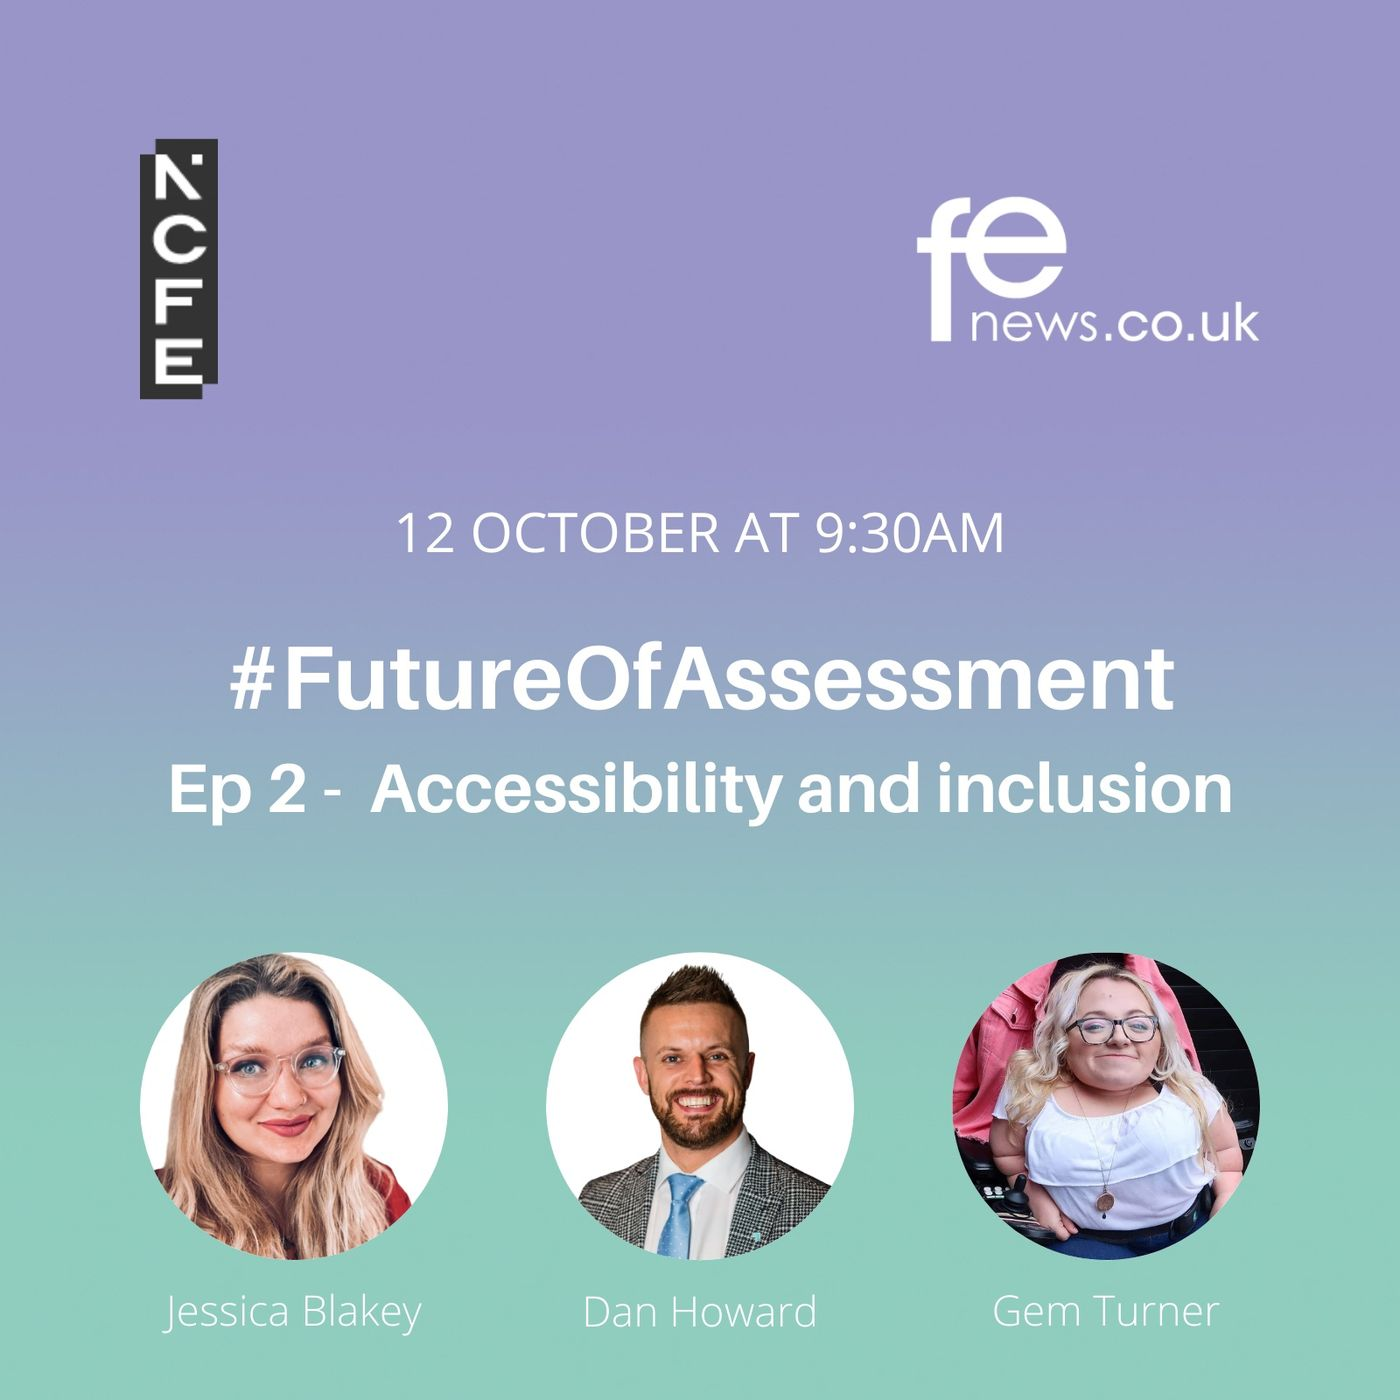 Accessibility and inclusion - #FutureOfAssessment Episode 2